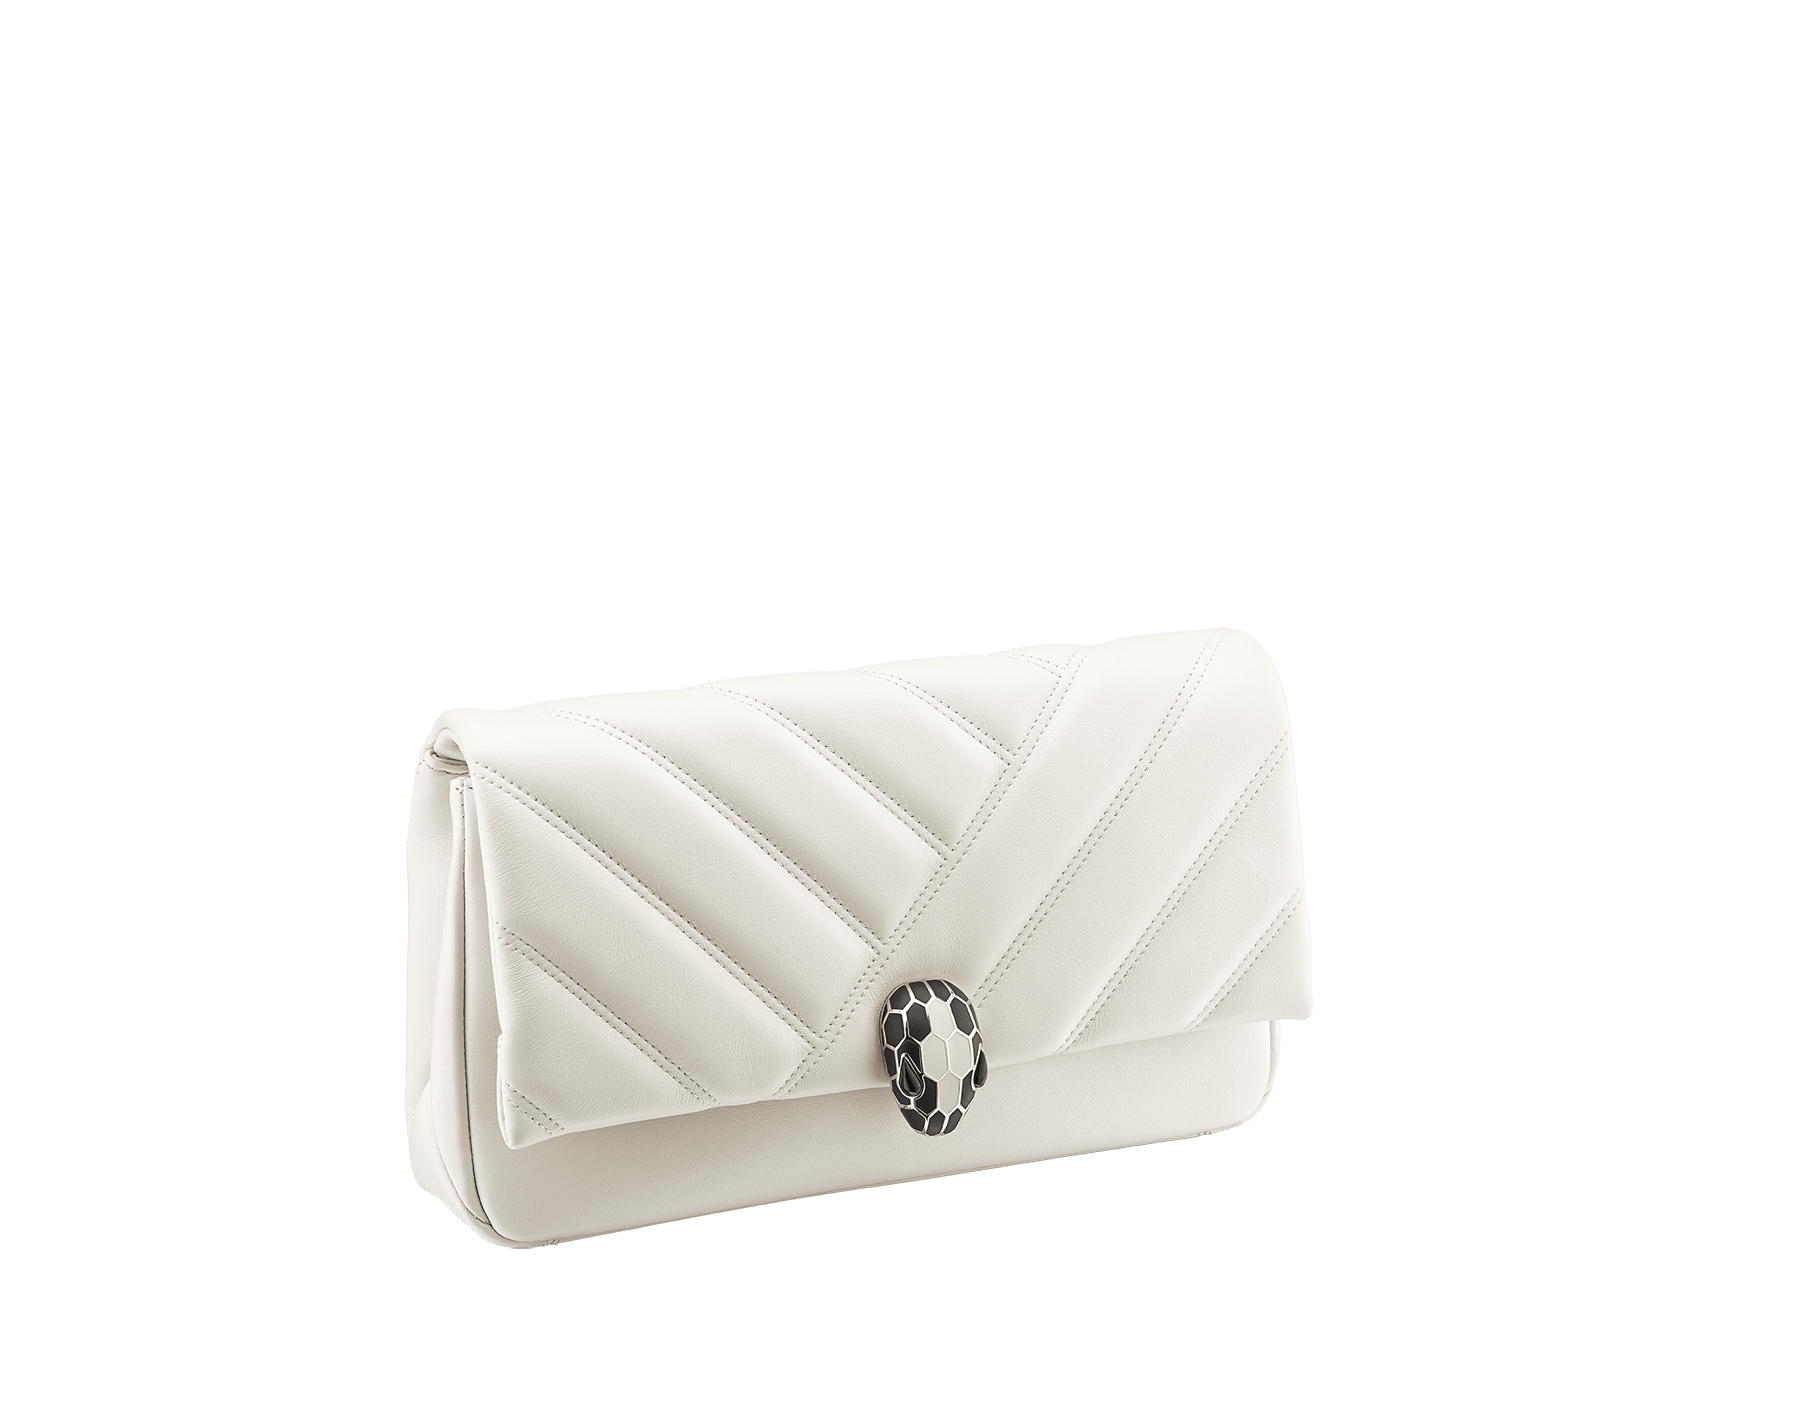 Serpenti Cabochon clutch bag in soft matelassé white calf leather, with a graphic motif. Brass light gold plated tempting snake head closure in black and white enamel and black onyx eyes. 289302 image 2